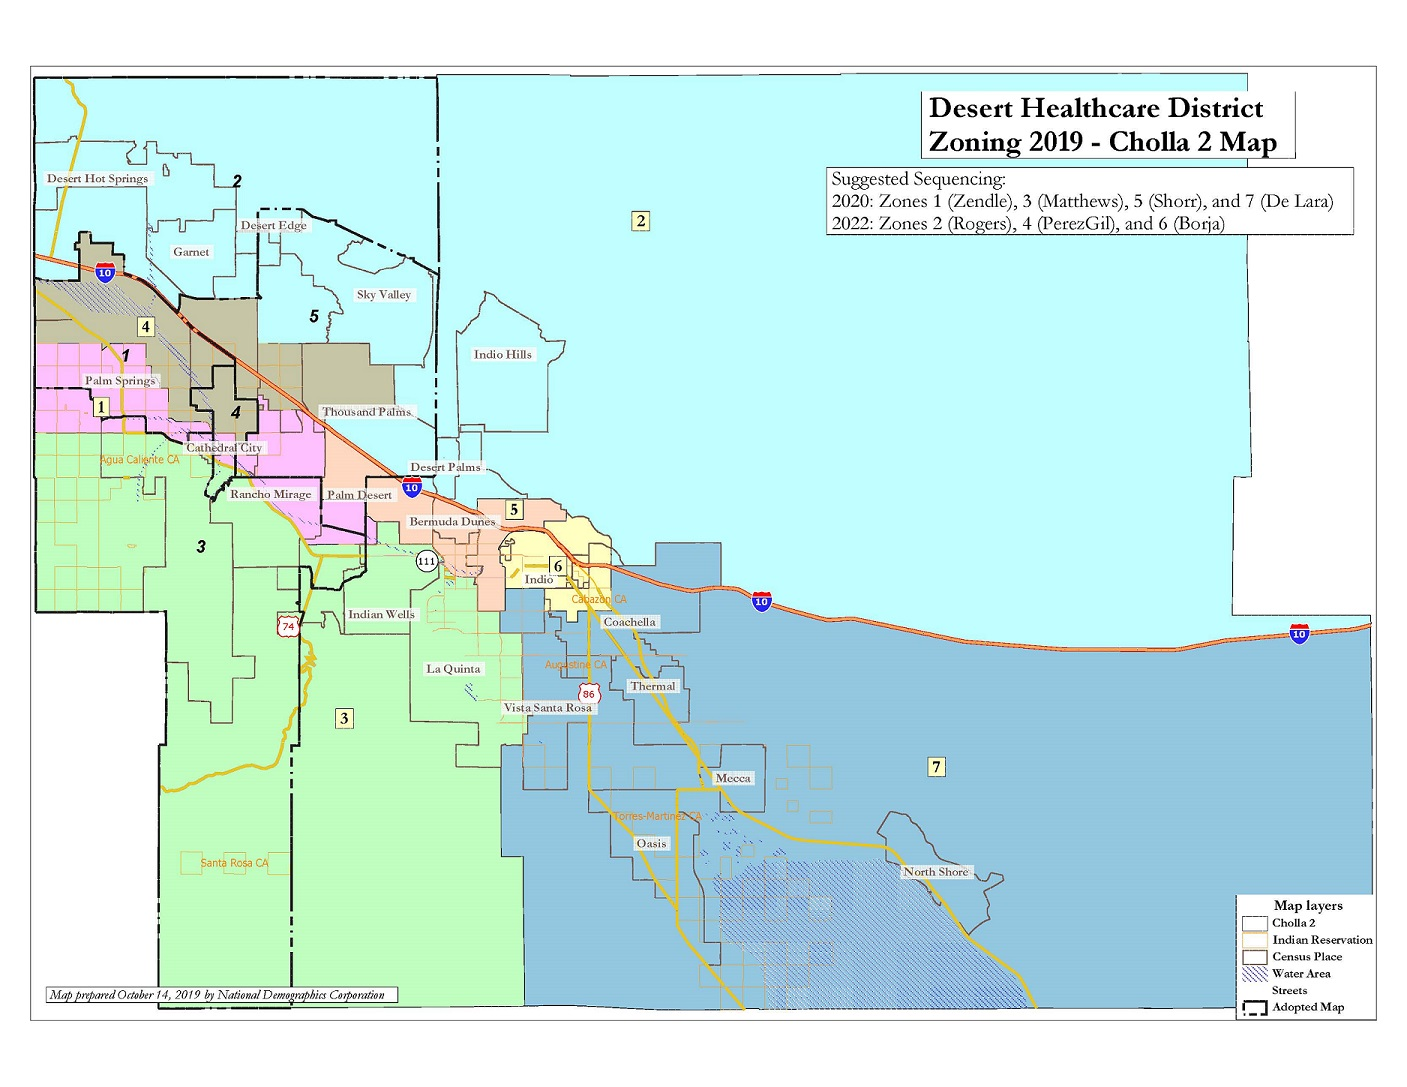 Map showing 7 DHCD zones the Board adopted in 2019